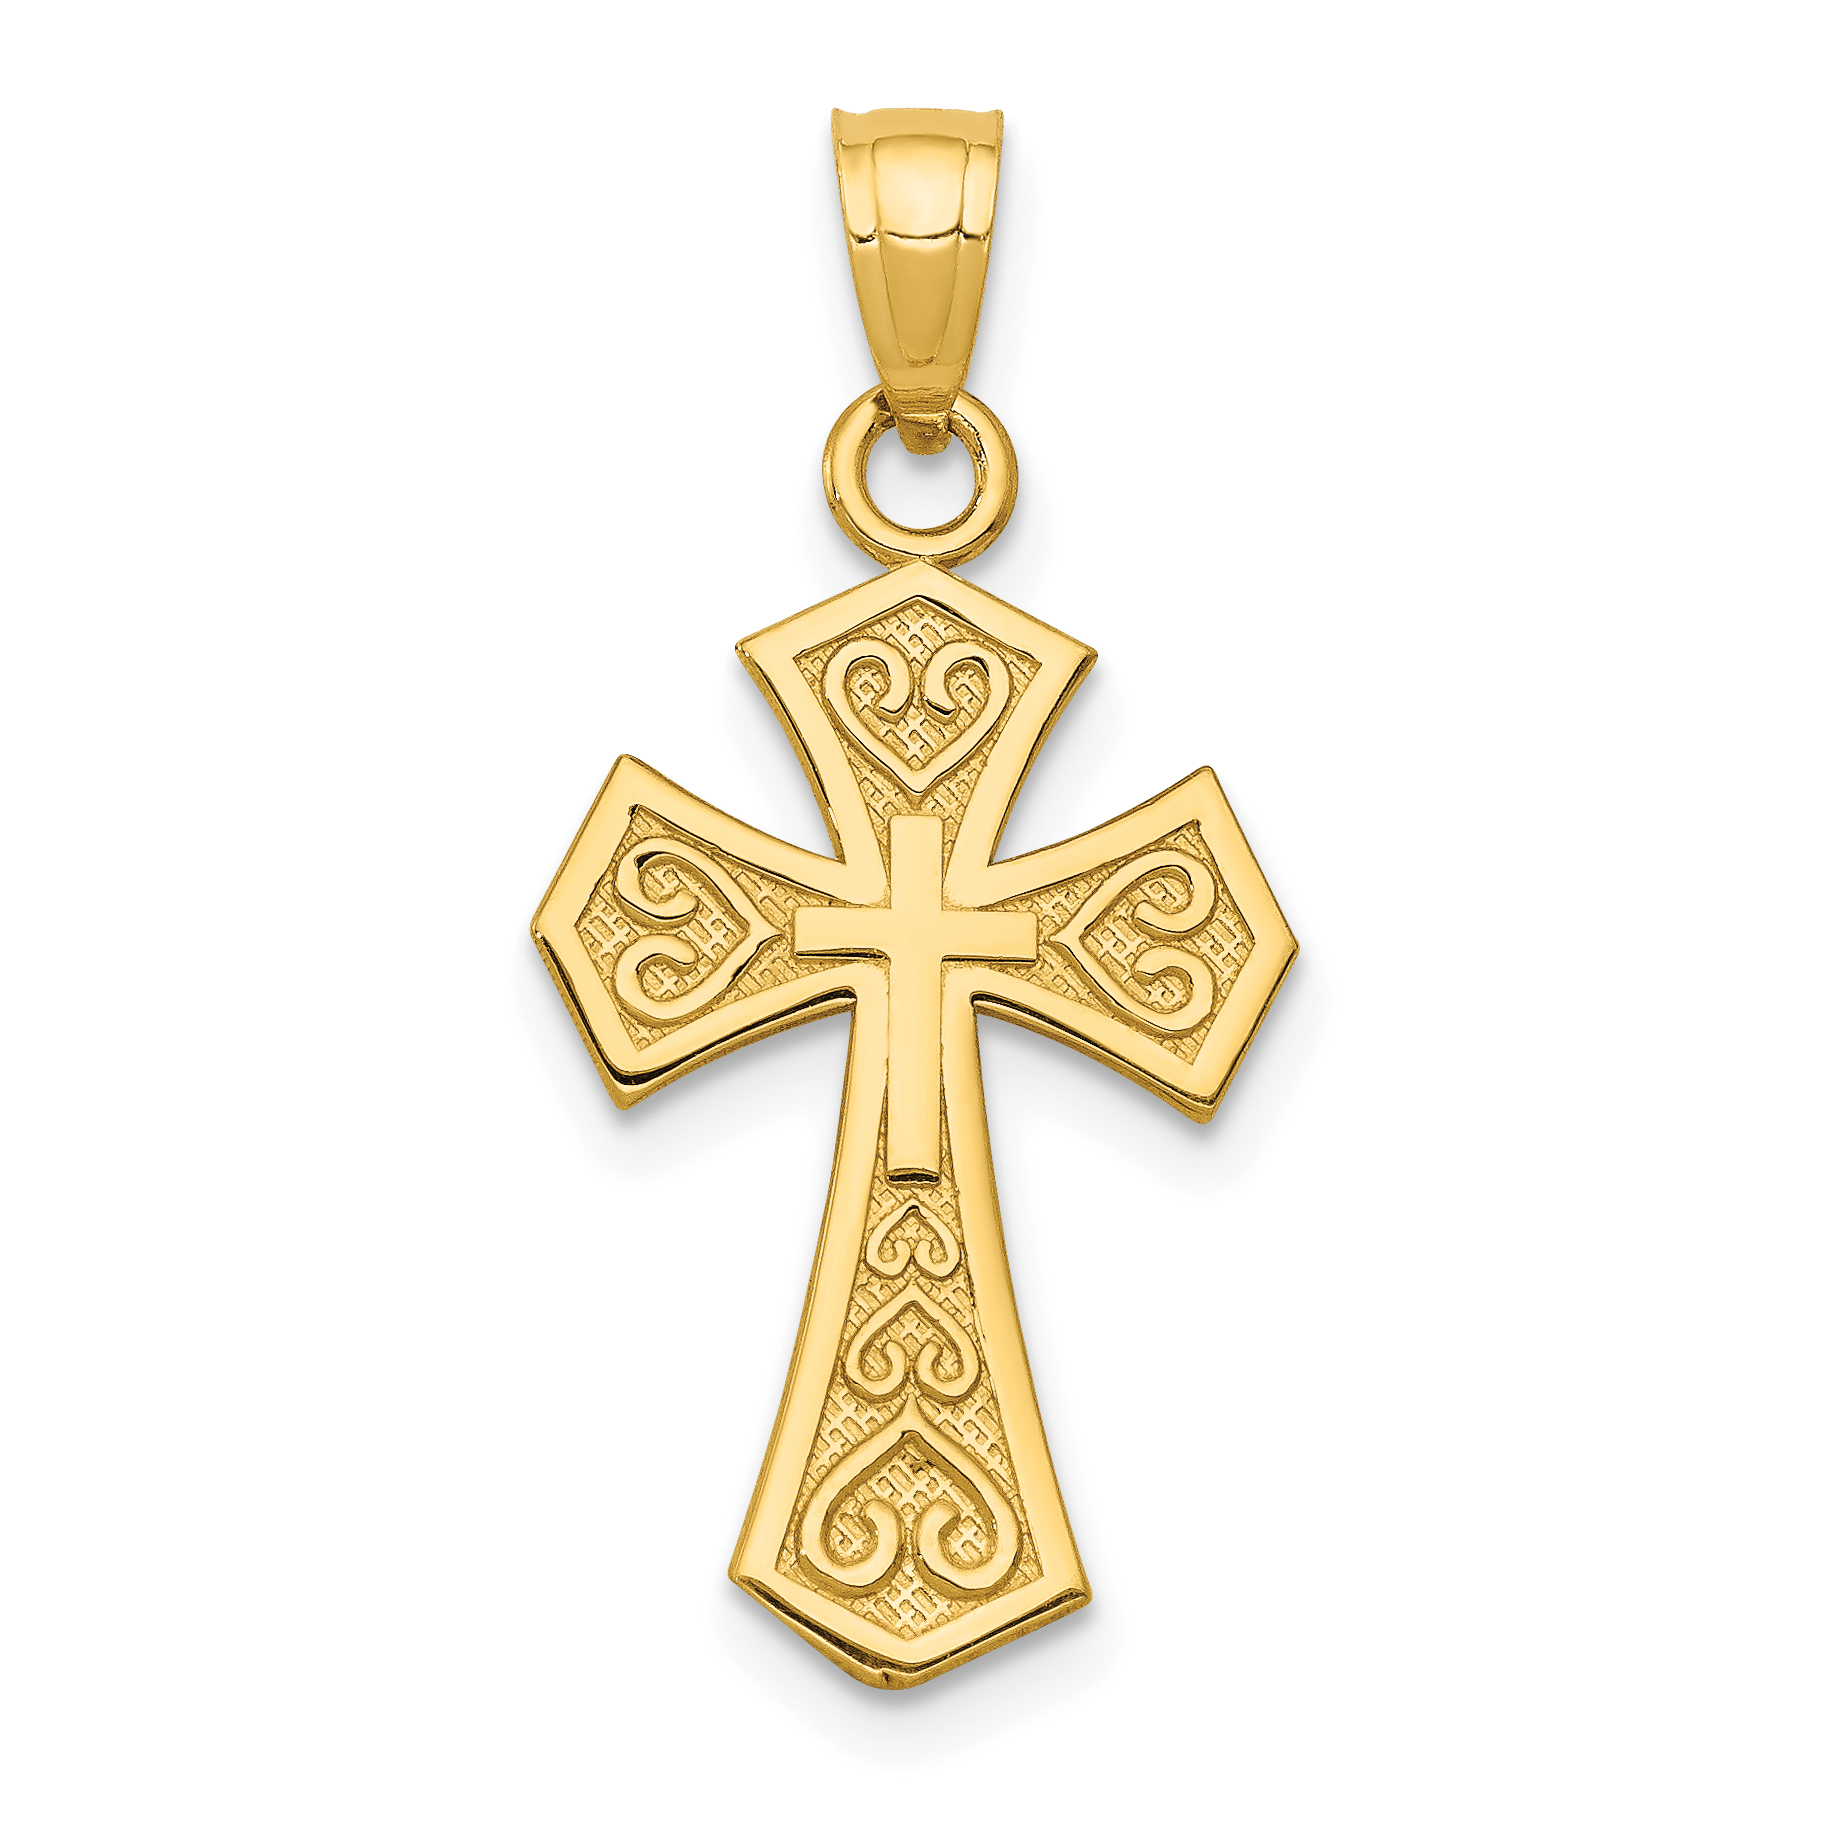 14k Yellow Gold Reversible Passion Cross Religious Pendant Charm Necklace Fine Jewelry Gifts For Women For Her - image 2 of 2